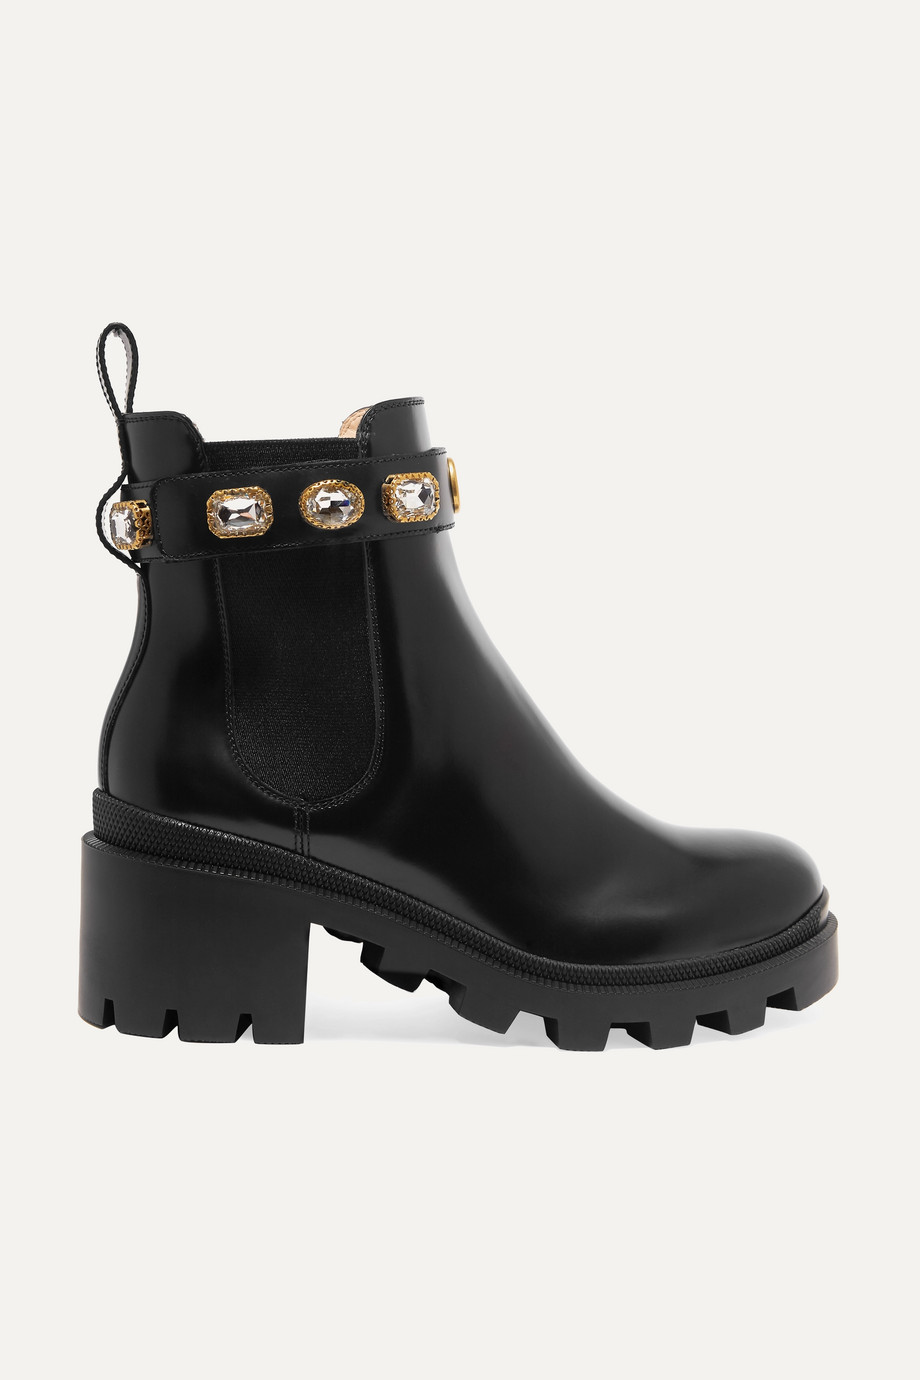 Gucci Crystal-embellished leather Chelsea boots